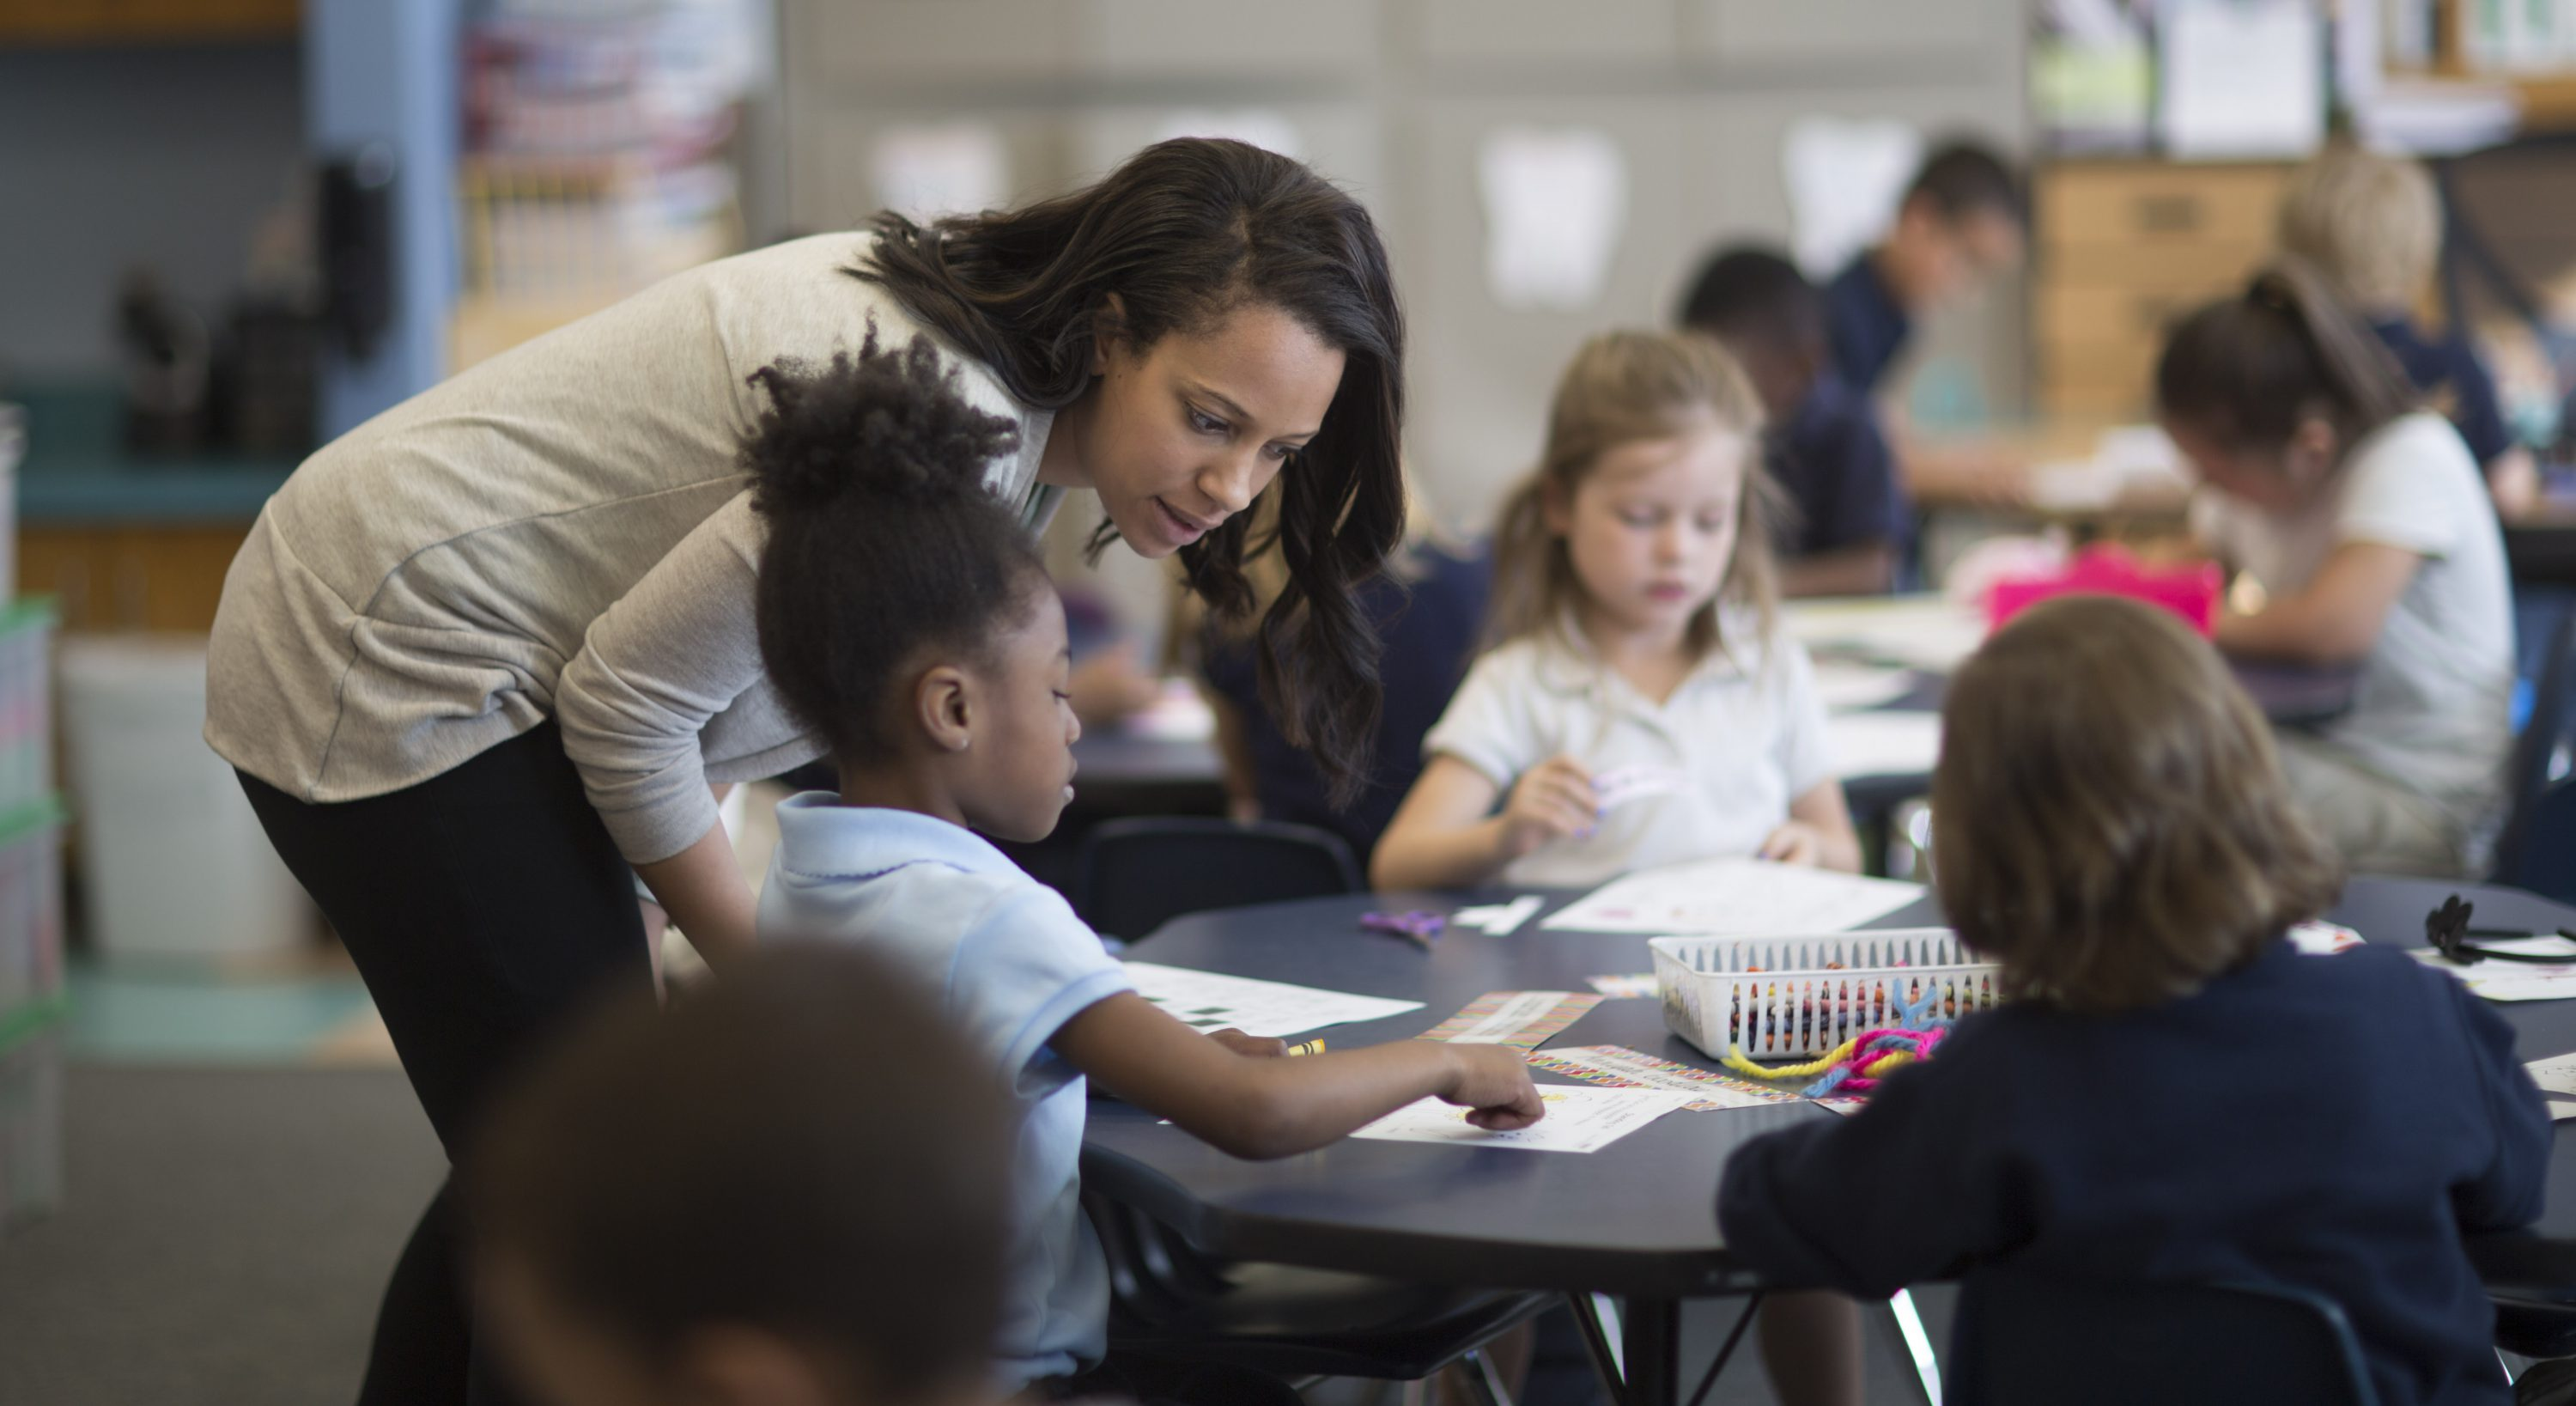 In this Monday, April 4, 2016 photo, Torie Shoecraft, who teaches kindergarten at Nichols Hills Elementary in Oklahoma City, works with her students on a class room assignment. Oklahoma educators and parents say the latest round of proposed funding cuts to schools could have devastating consequences for students, as the state suffers its worst-ever budget crisis. (AP Photo/J Pat Carter)